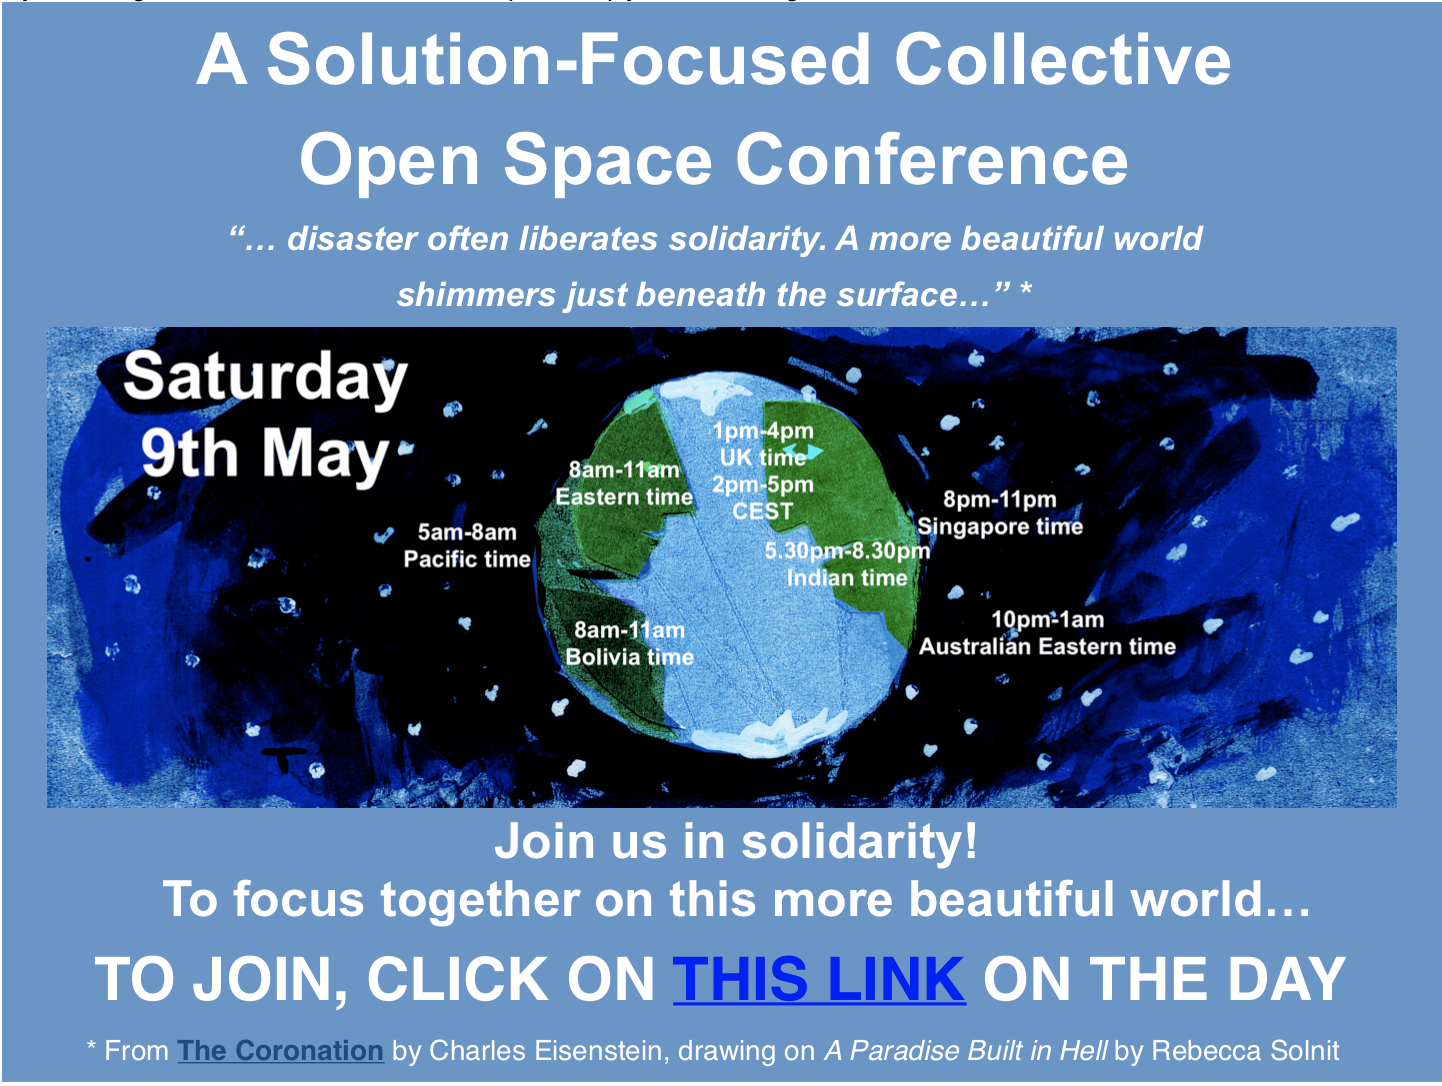 A Solution-Focused Collective Open Space Conference